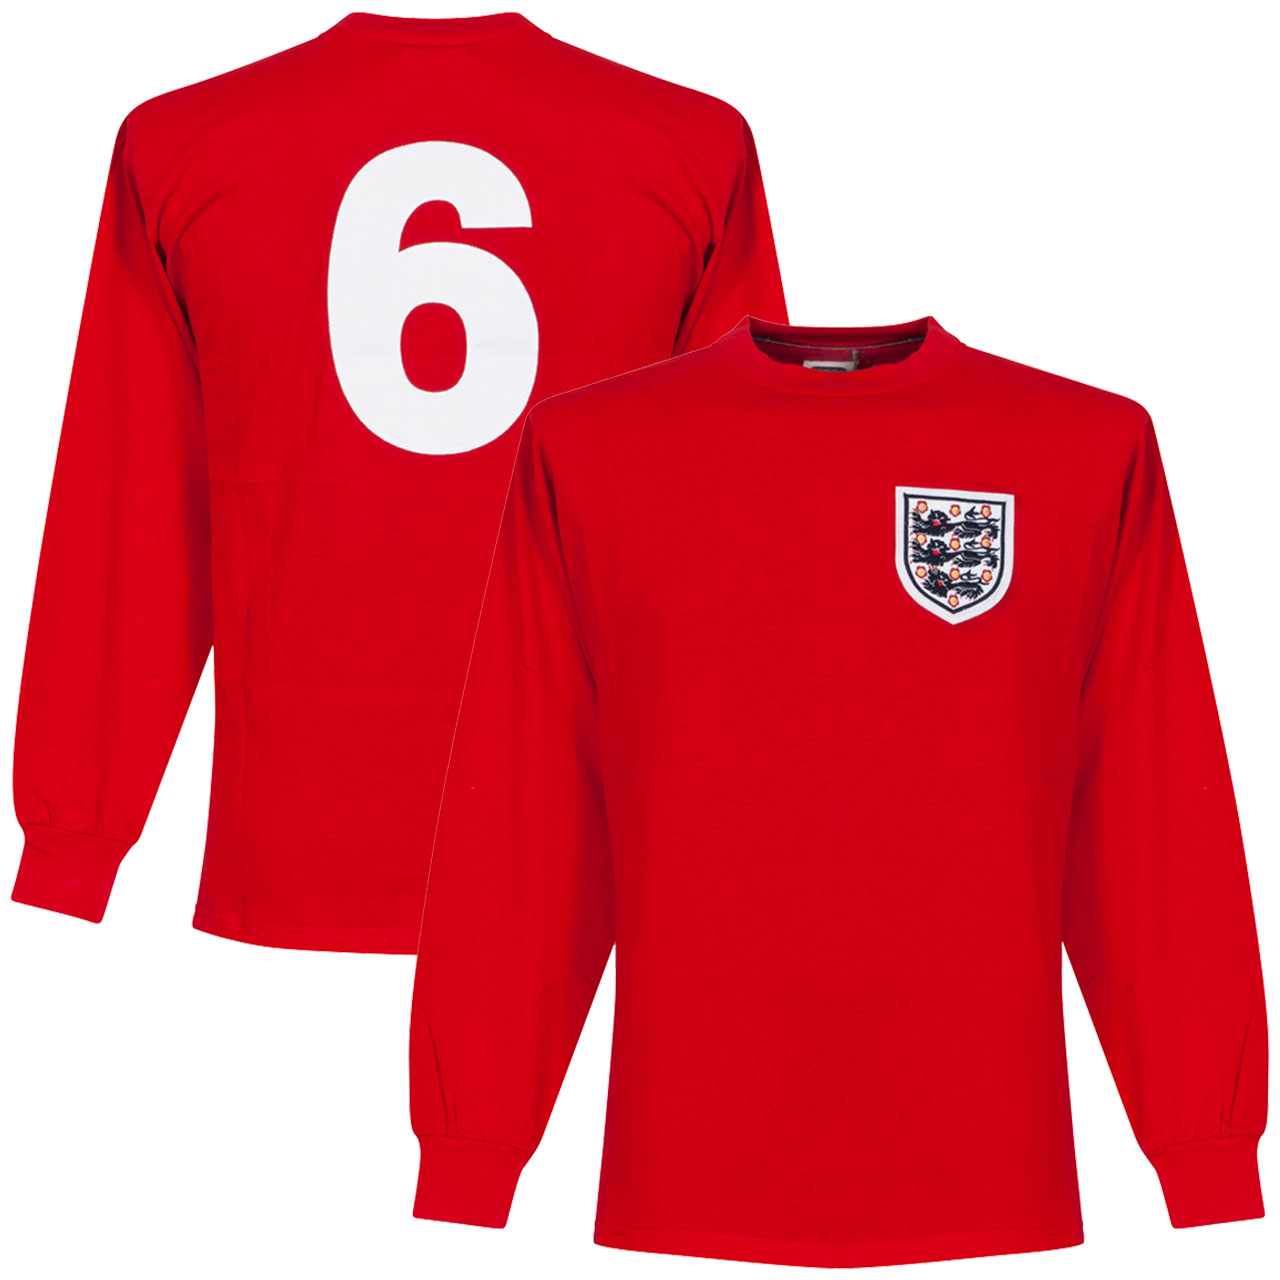 1966 England Away L/S Retro Shirt + No. 6 - XXL